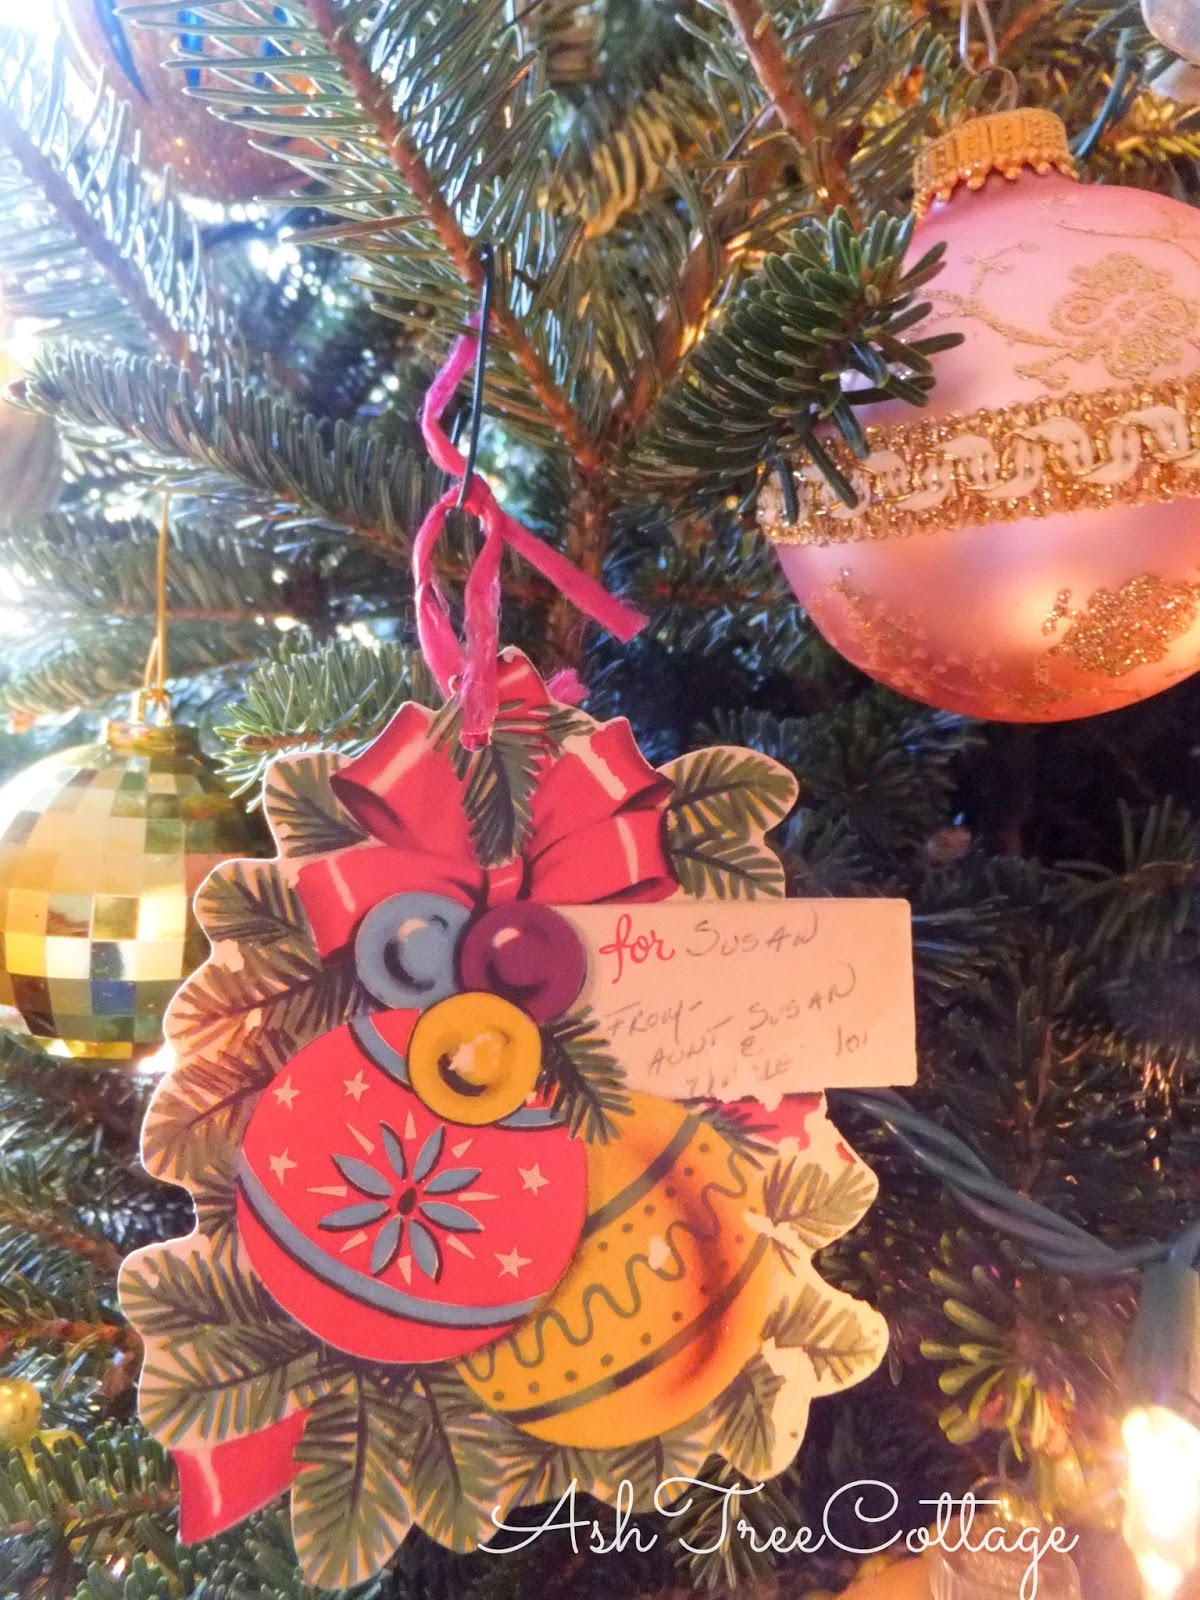 Ash Tree Cottage: Finding Comfort in Old Christmas Ornaments